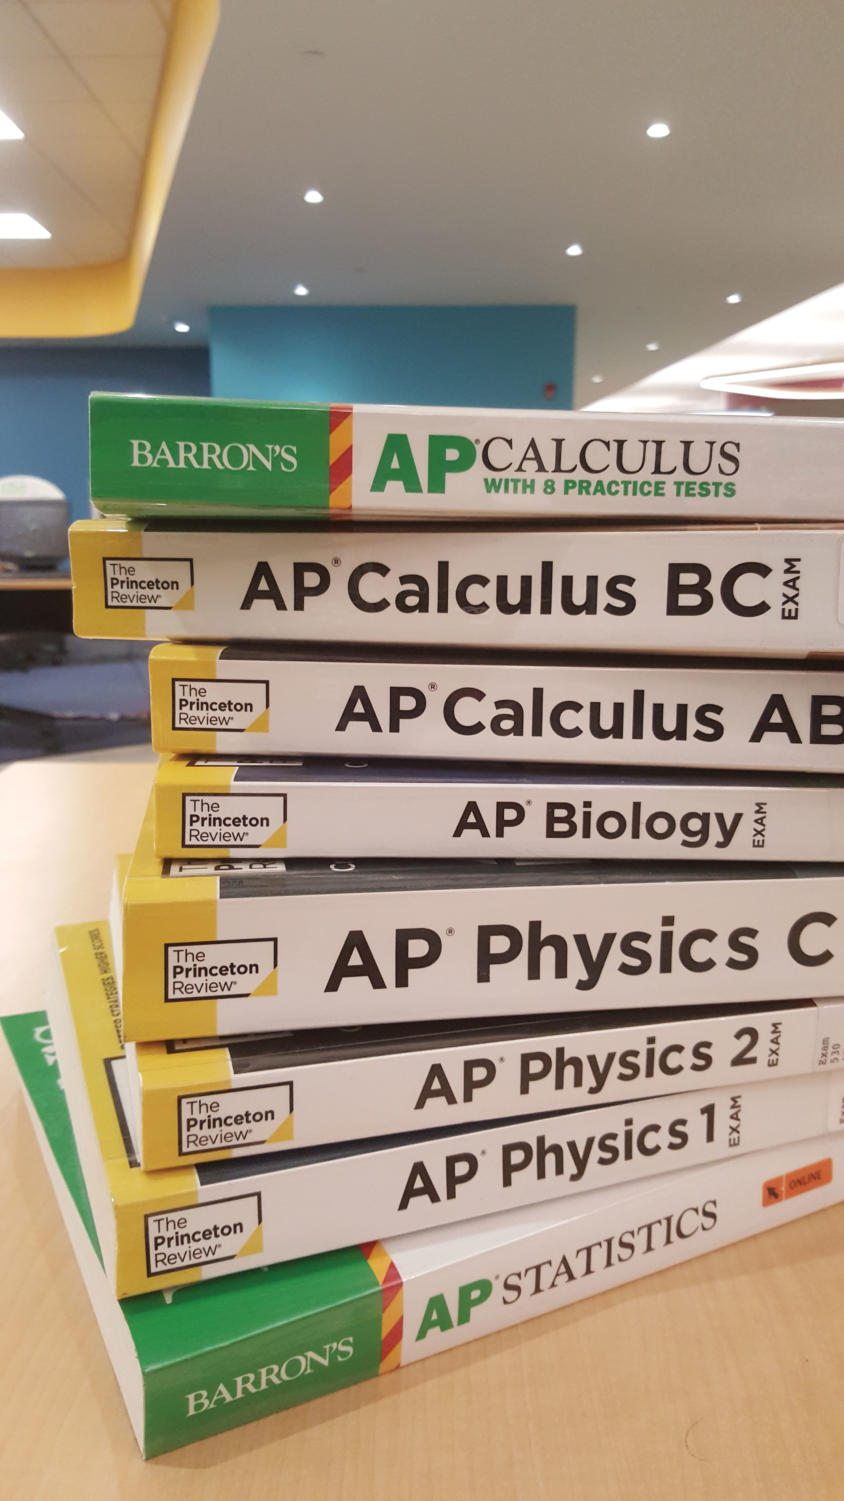 These are some of the many AP courses offered at VHHS.